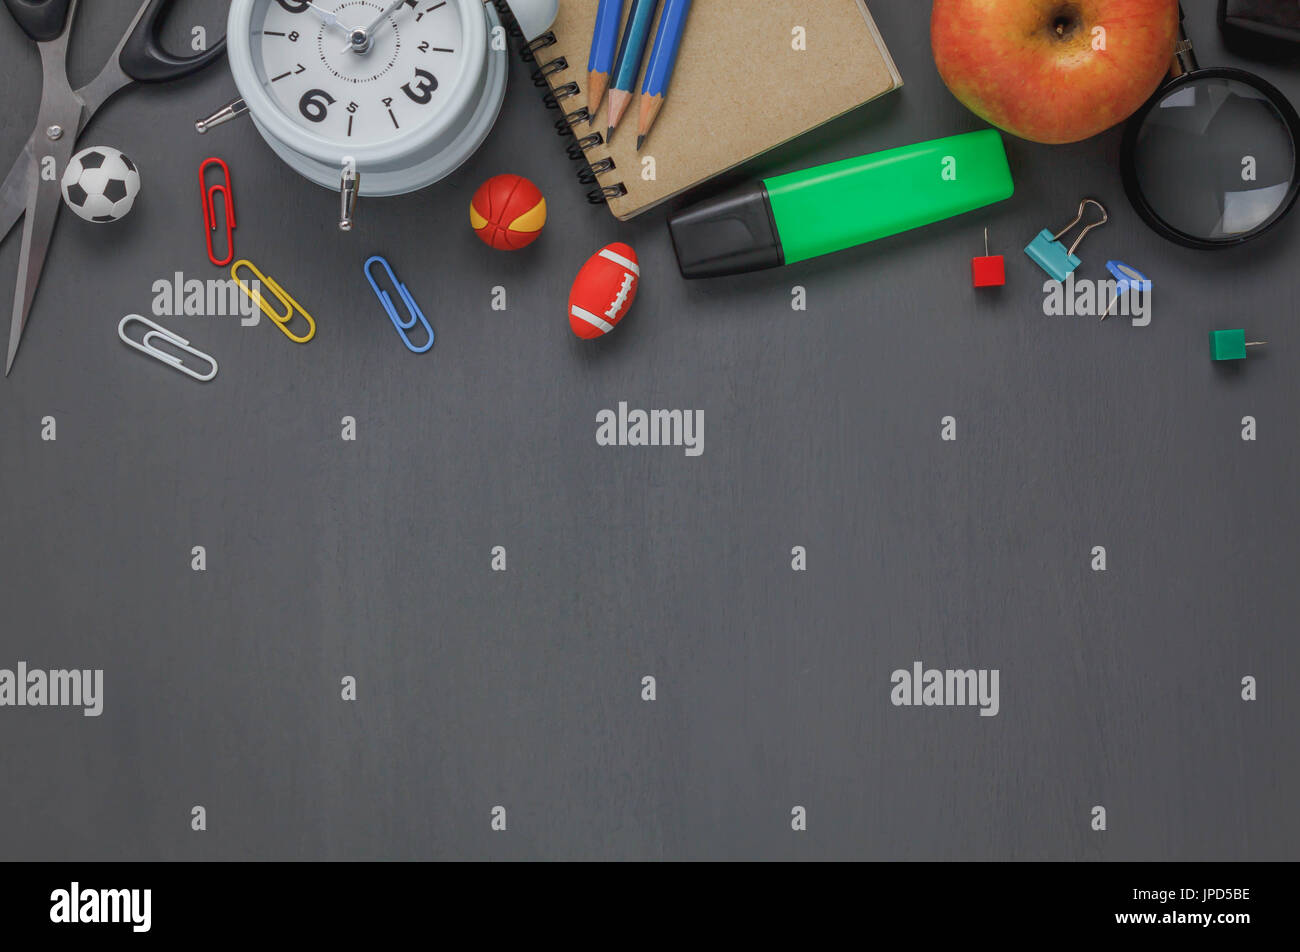 items for office desk. Top View Accessories Back To School Or Items Desktop Office Desk Background.Variety Stationery On Grunge Blackboard With Copy Space For Mock Up And We